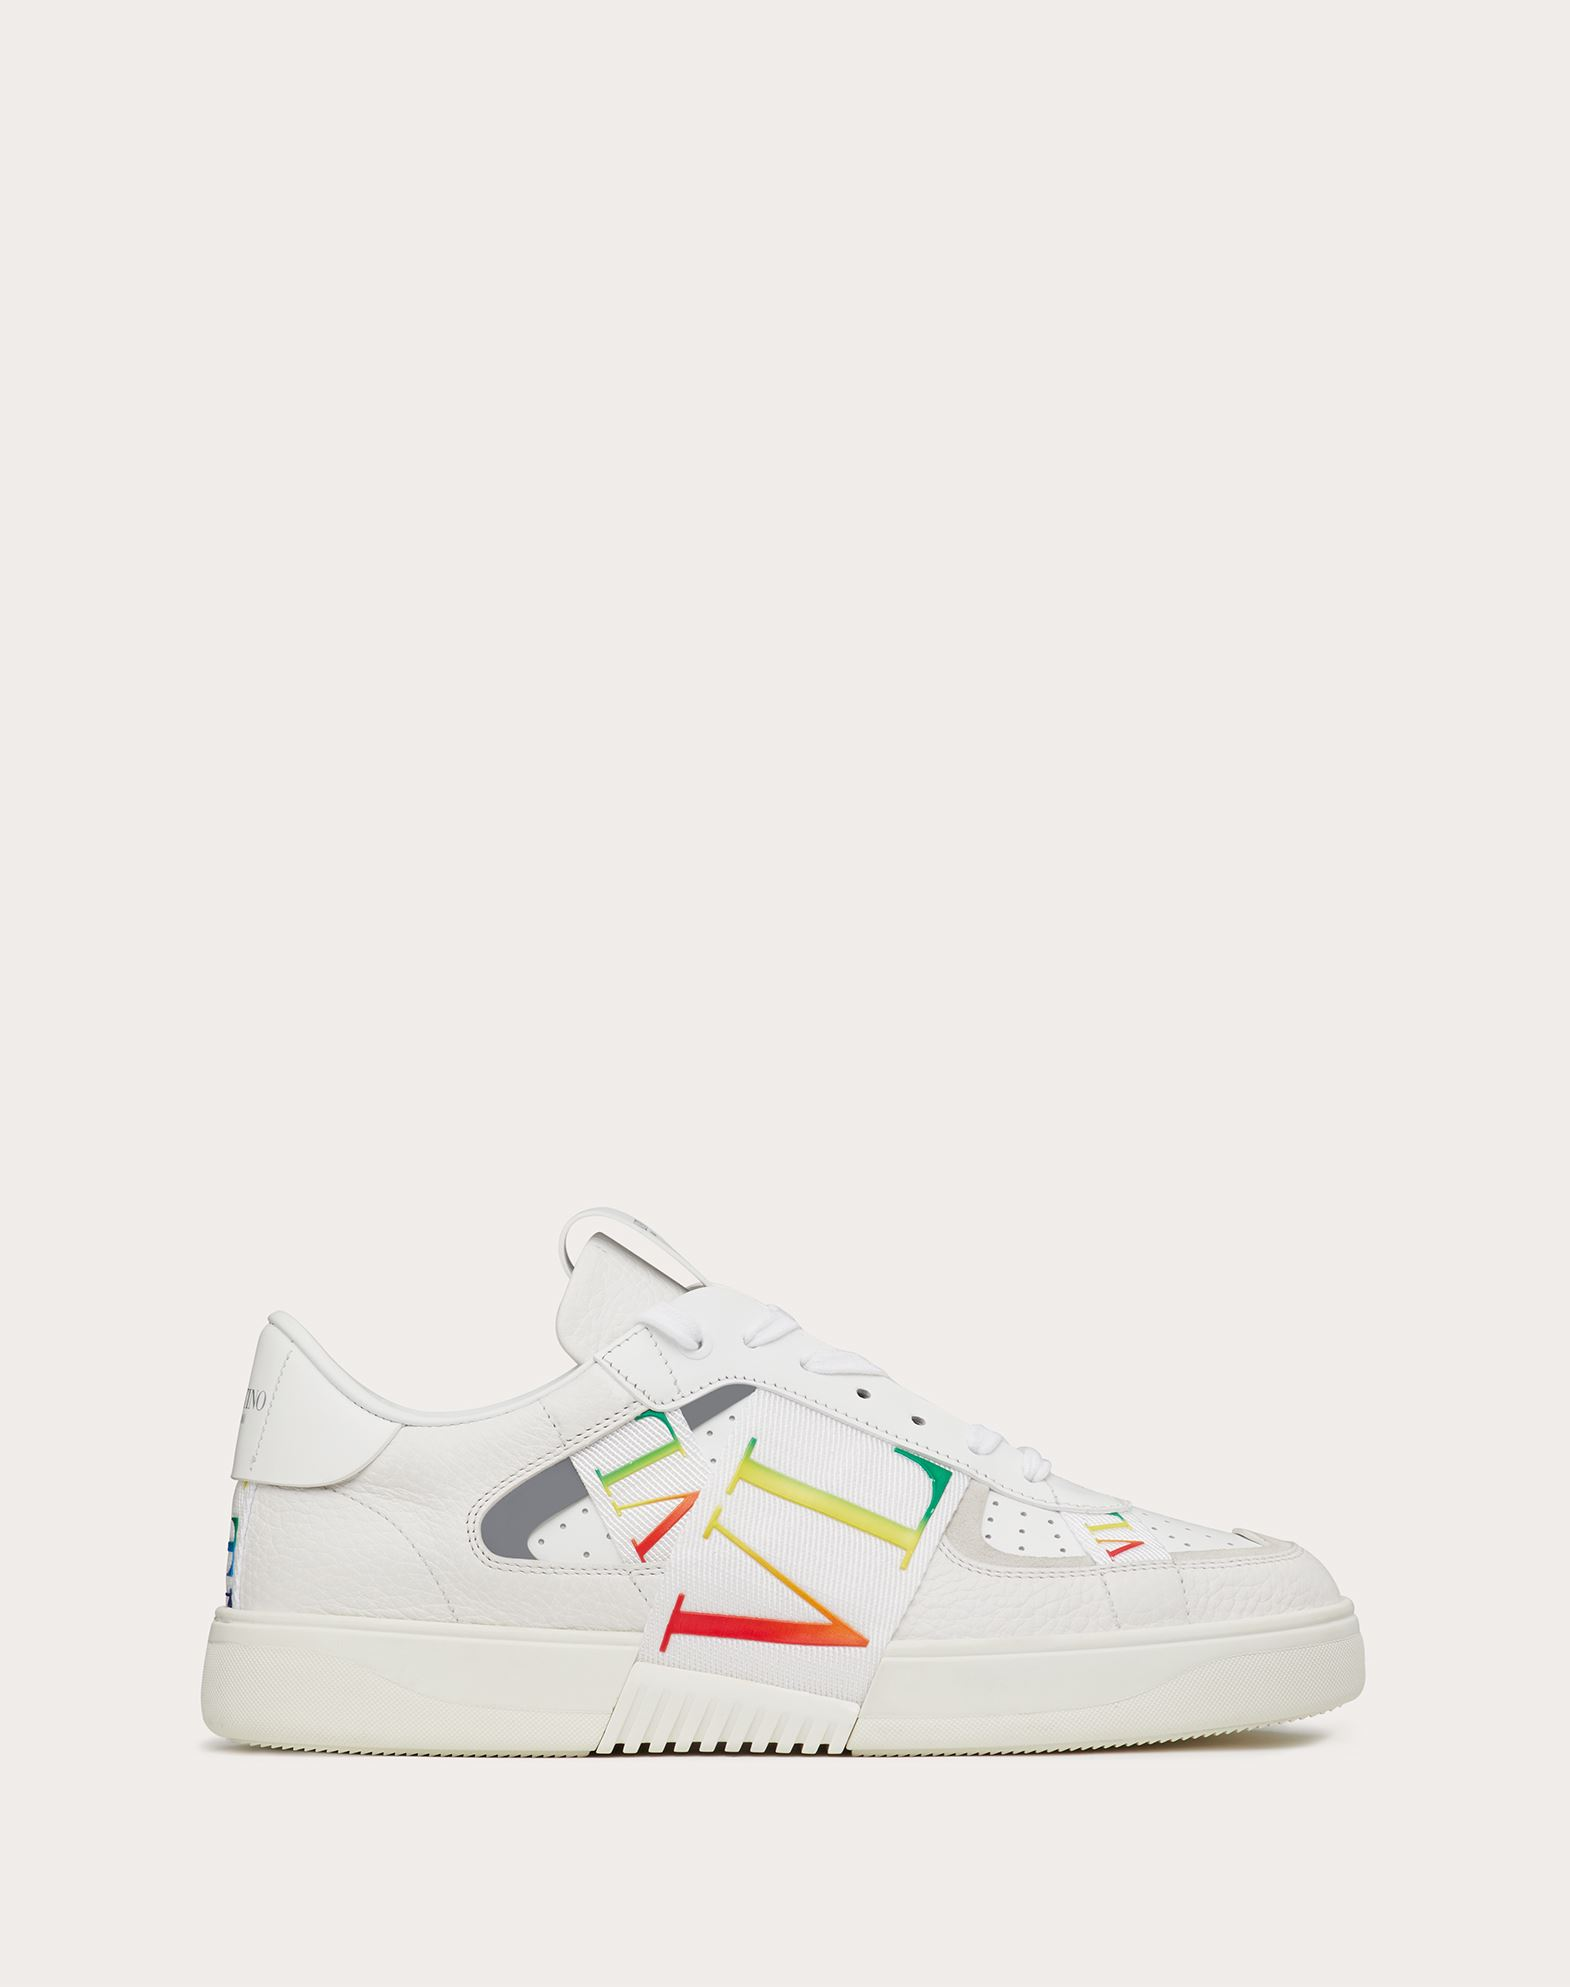 Valentino VALENTINO GARAVANI UOMO LOW-TOP CALFSKIN VL7N SNEAKER WITH BANDS